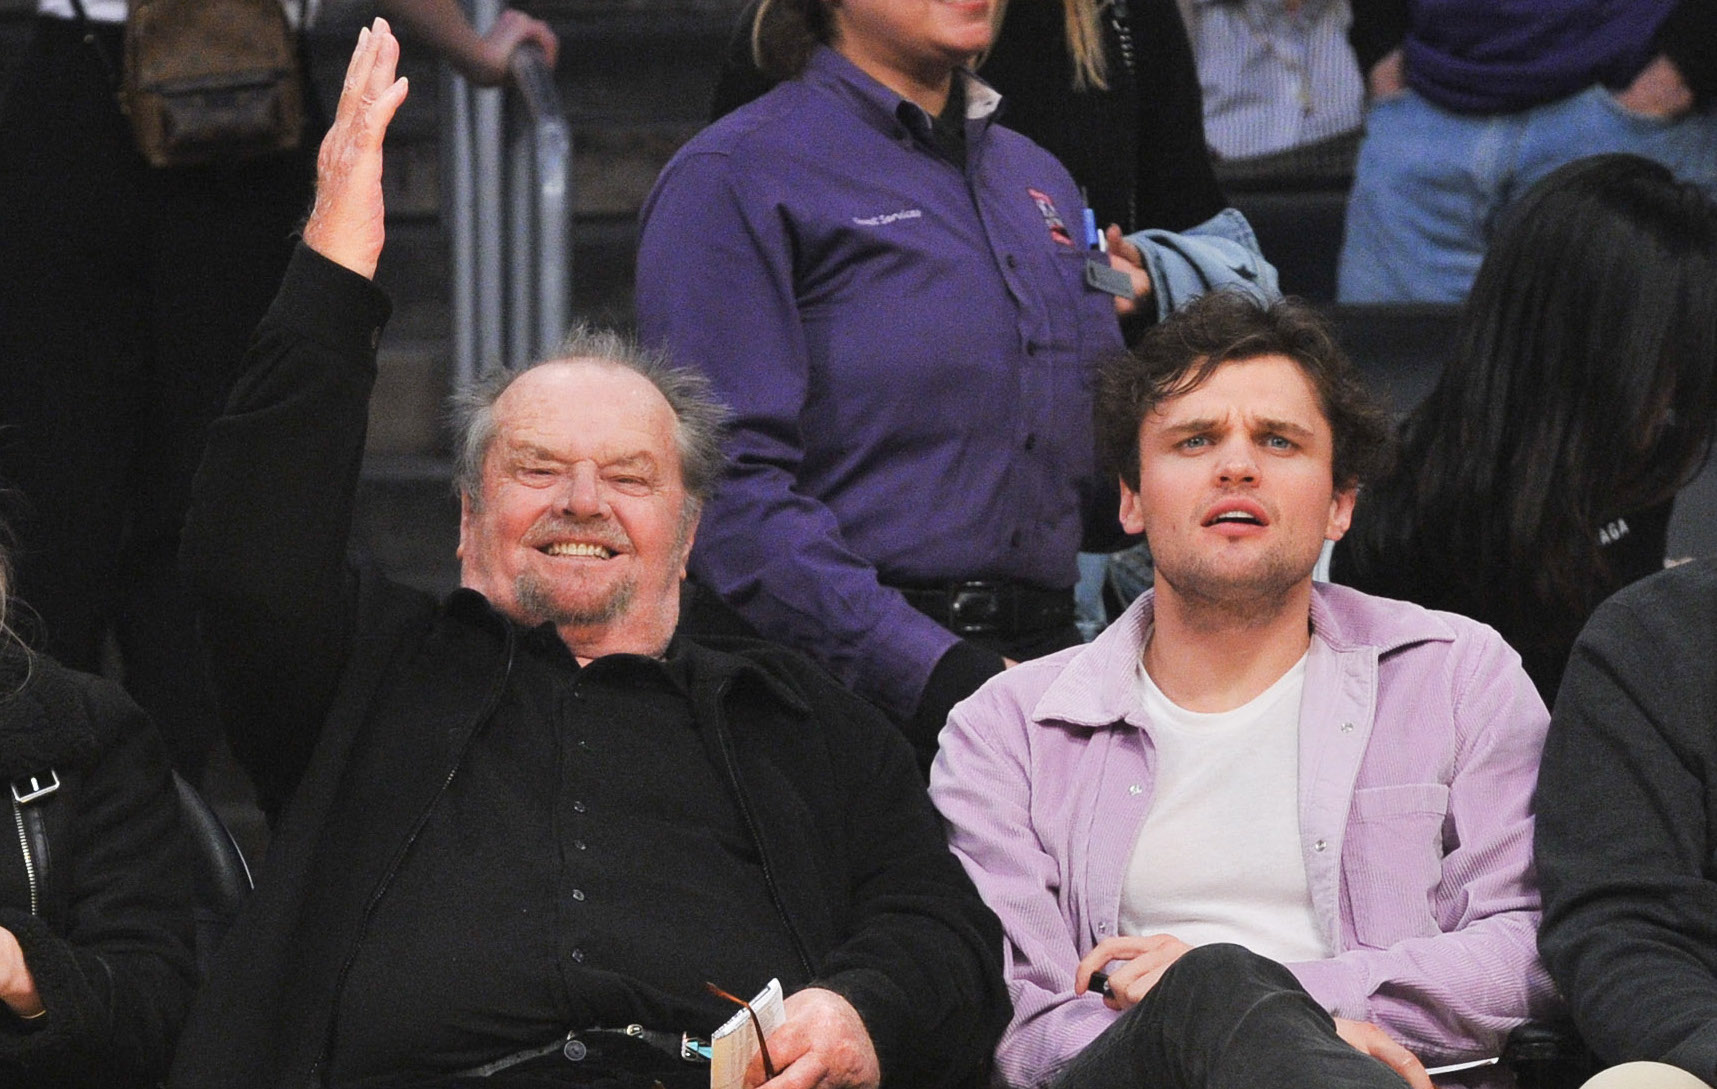 Jack Nicholson Makes Rare Public Appearance With Son Ray At Game Ray nicholson was born on february 20, 1992 in los angeles, california, usa as raymond broussard nicholson. https www closerweekly com posts jack nicholson makes rare public appearance with son ray at game